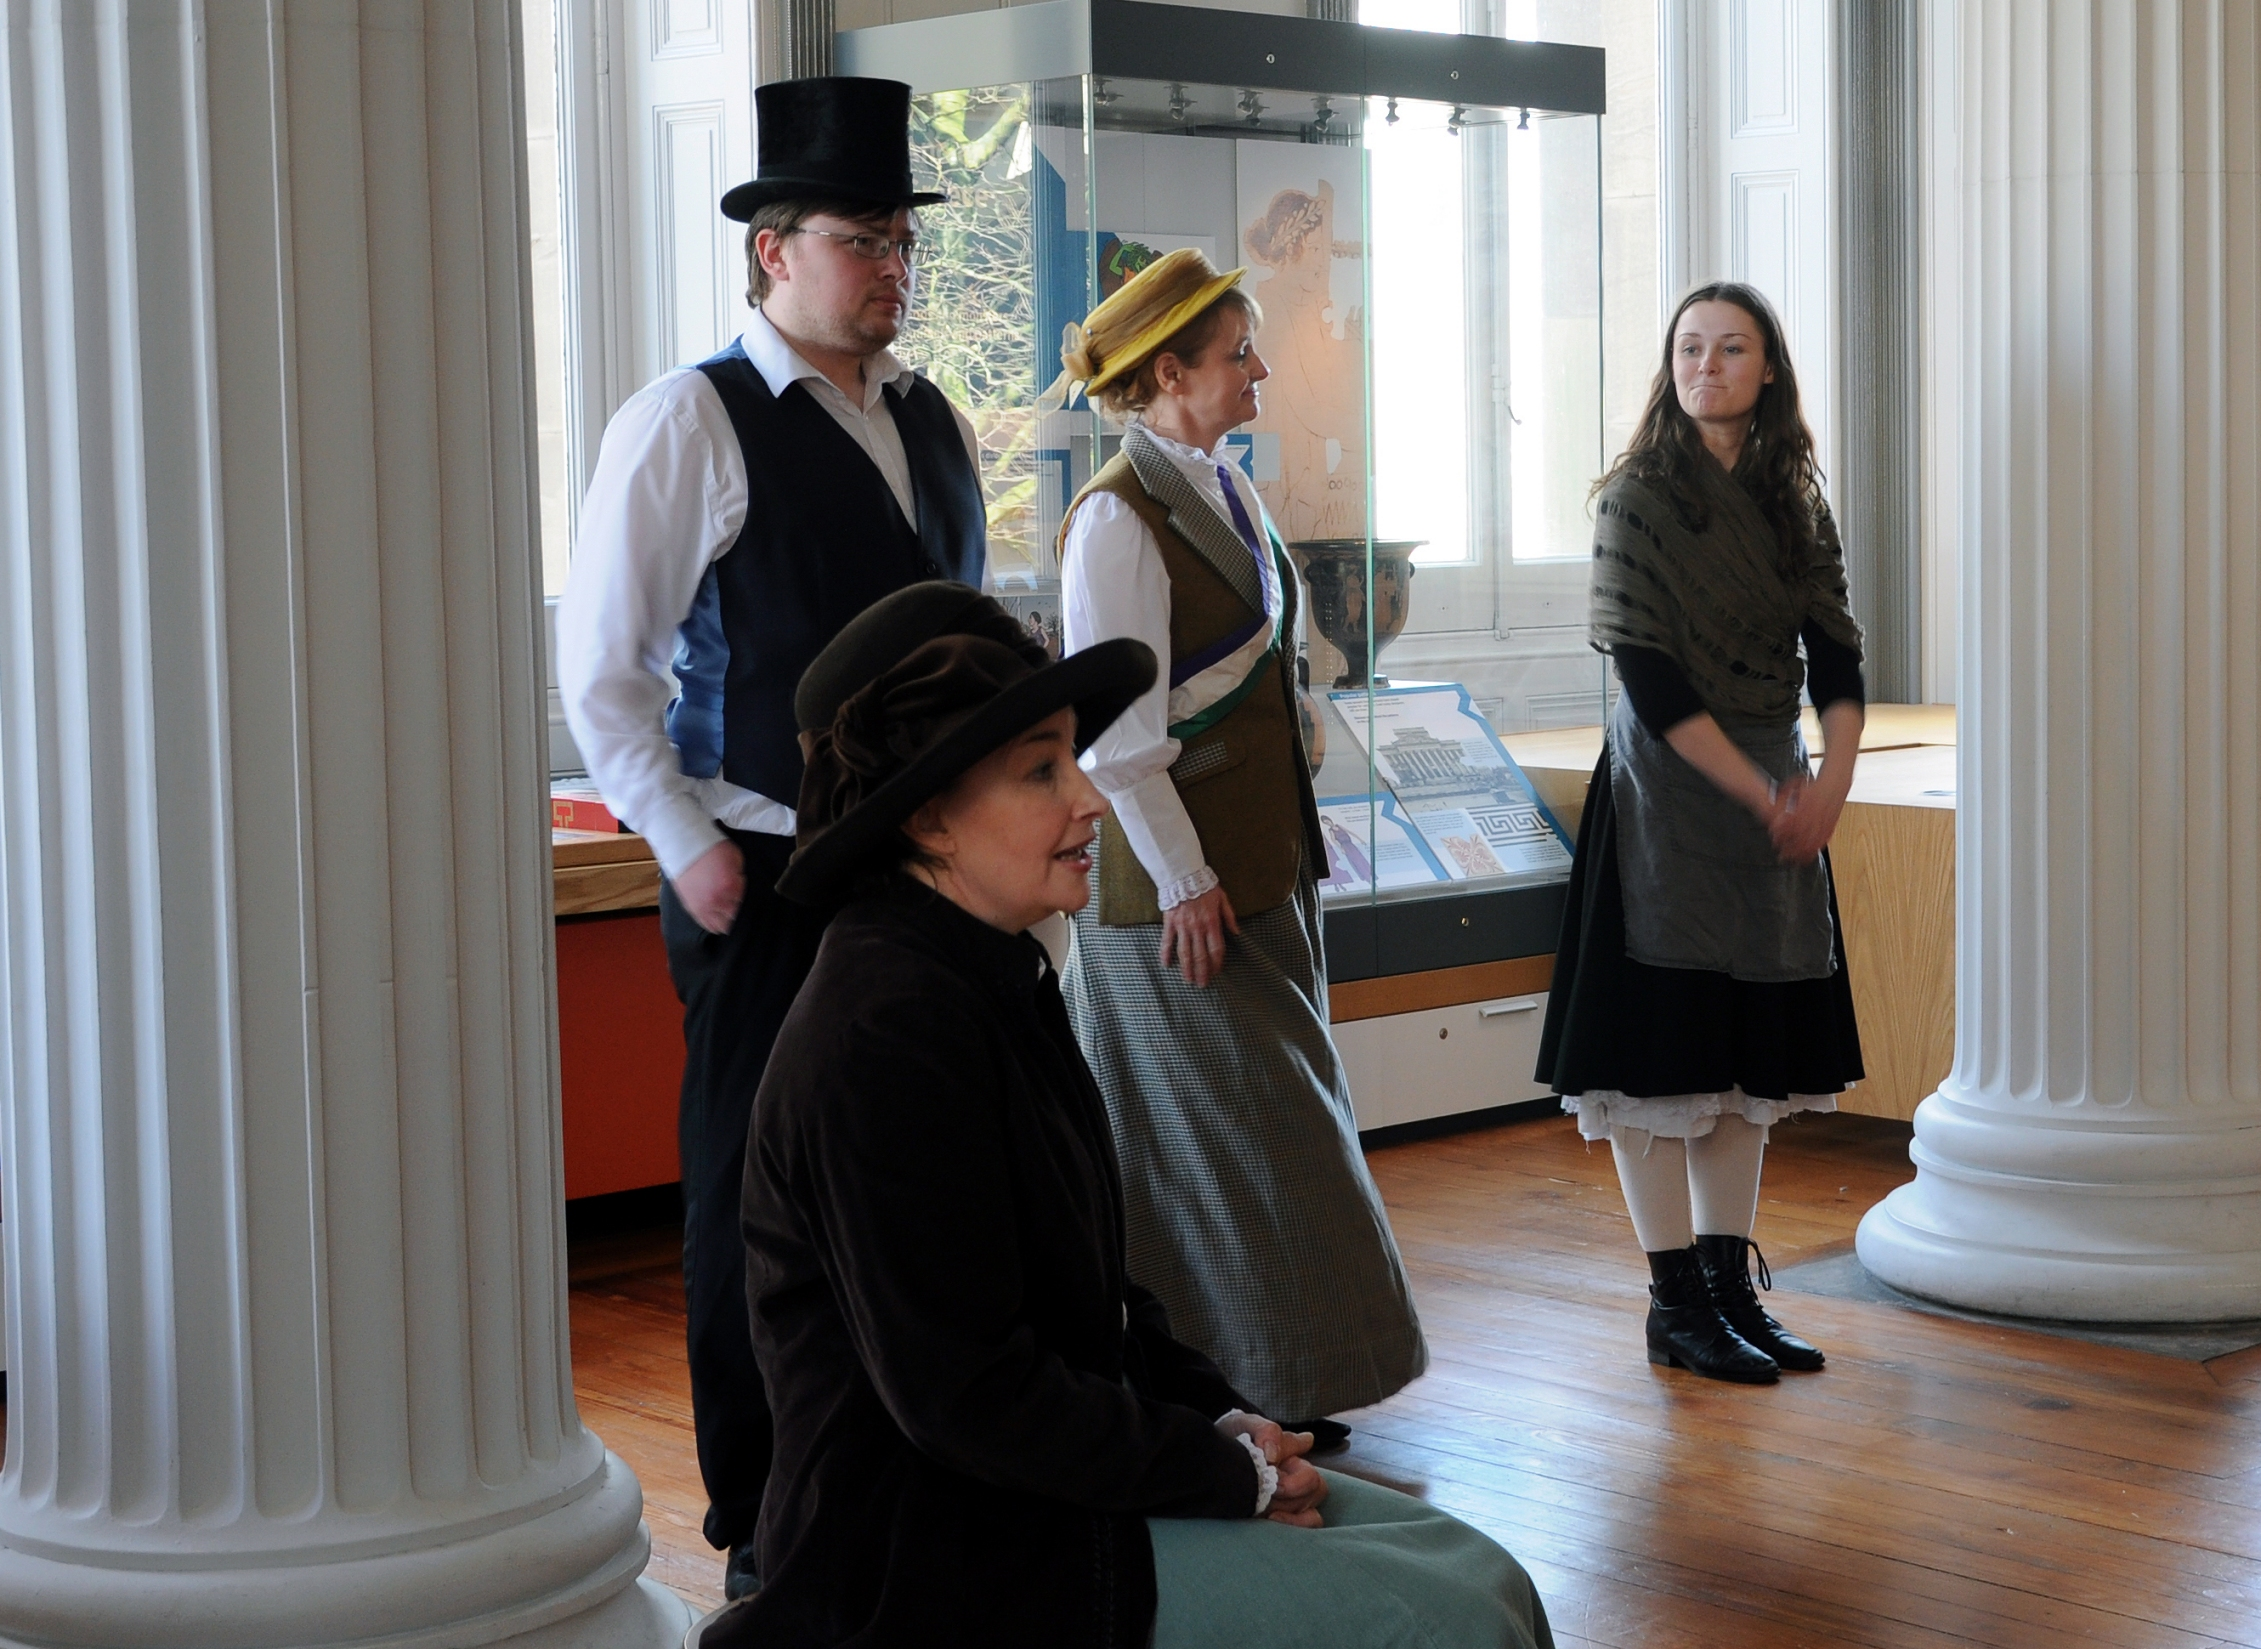 The Actors in Their Roles Performing at the 'Time Explorers' Event